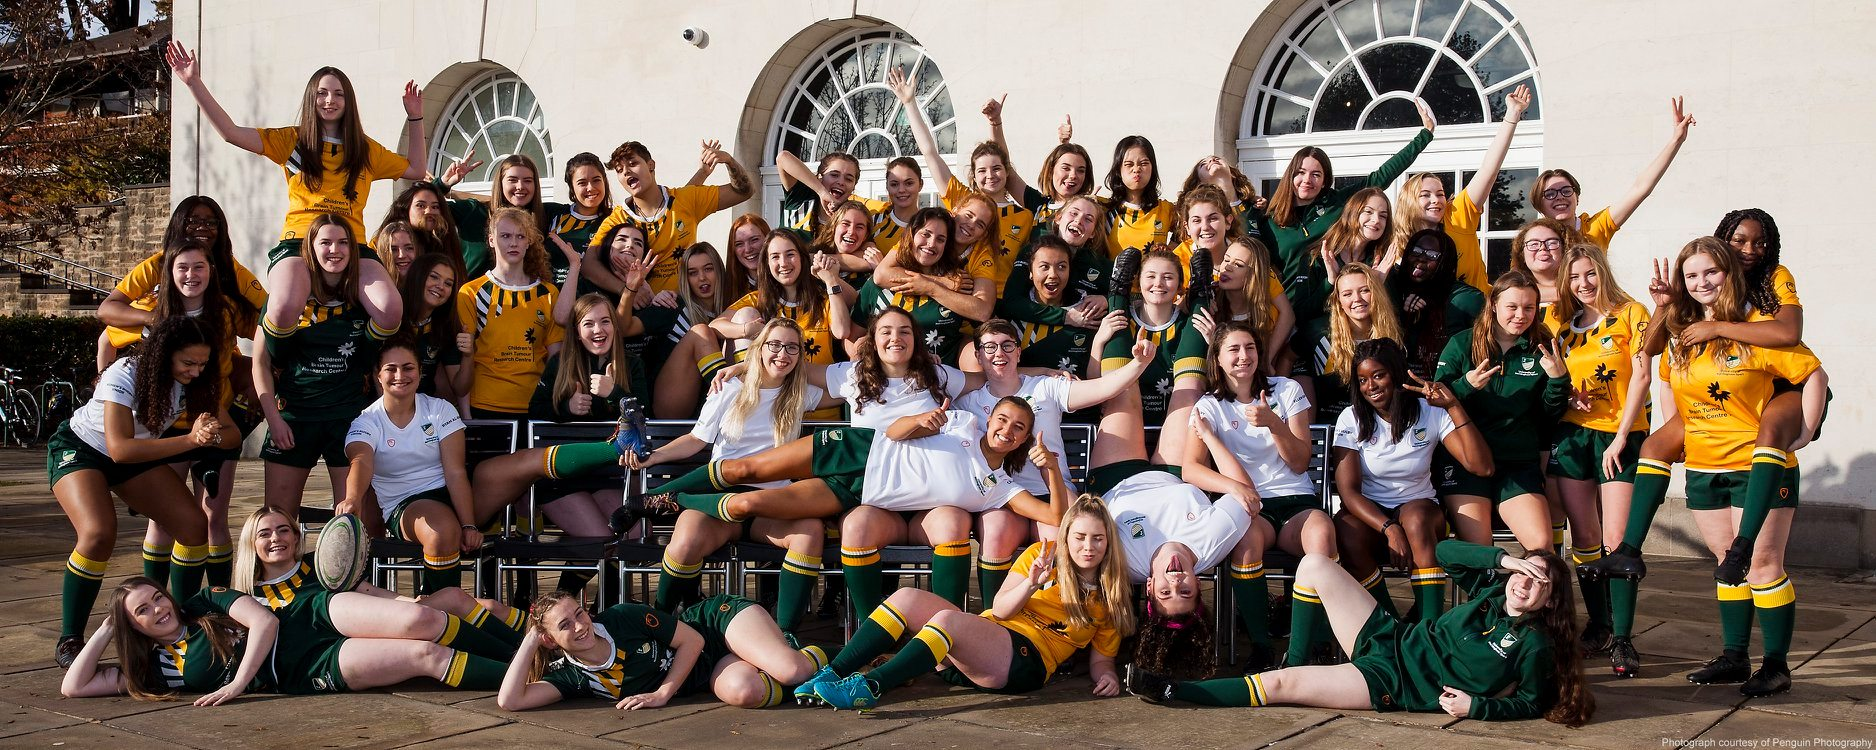 Rugby (Womens) thumbnail